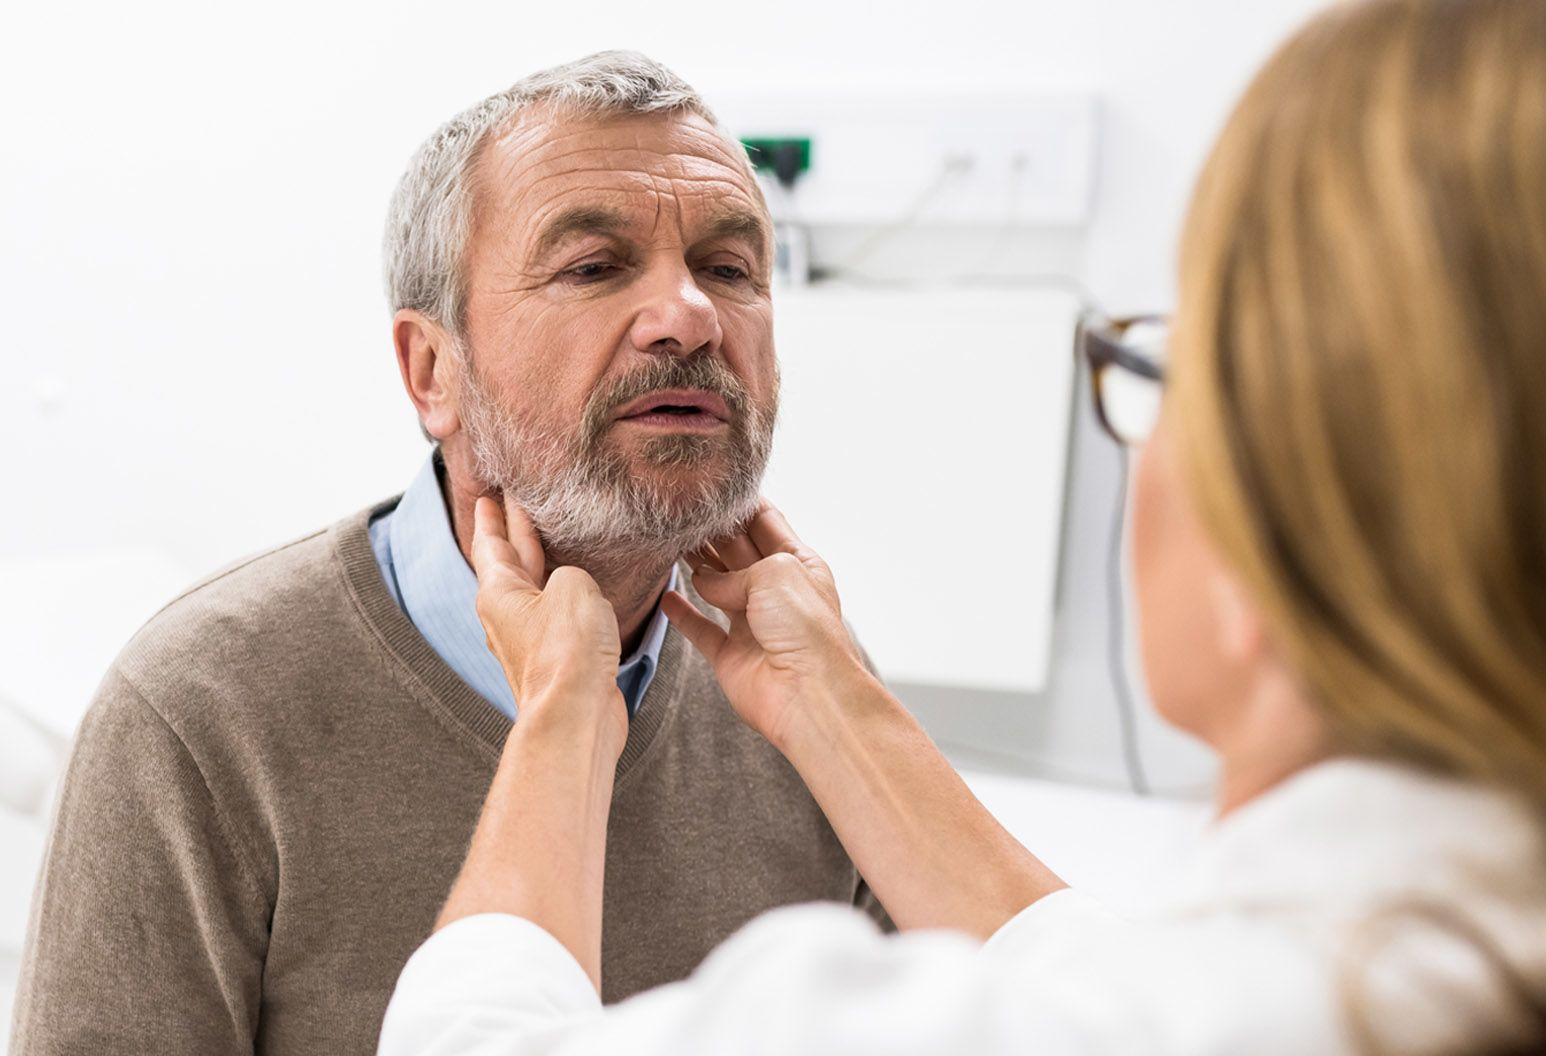 Older man getting his throat glad examined by a doctor